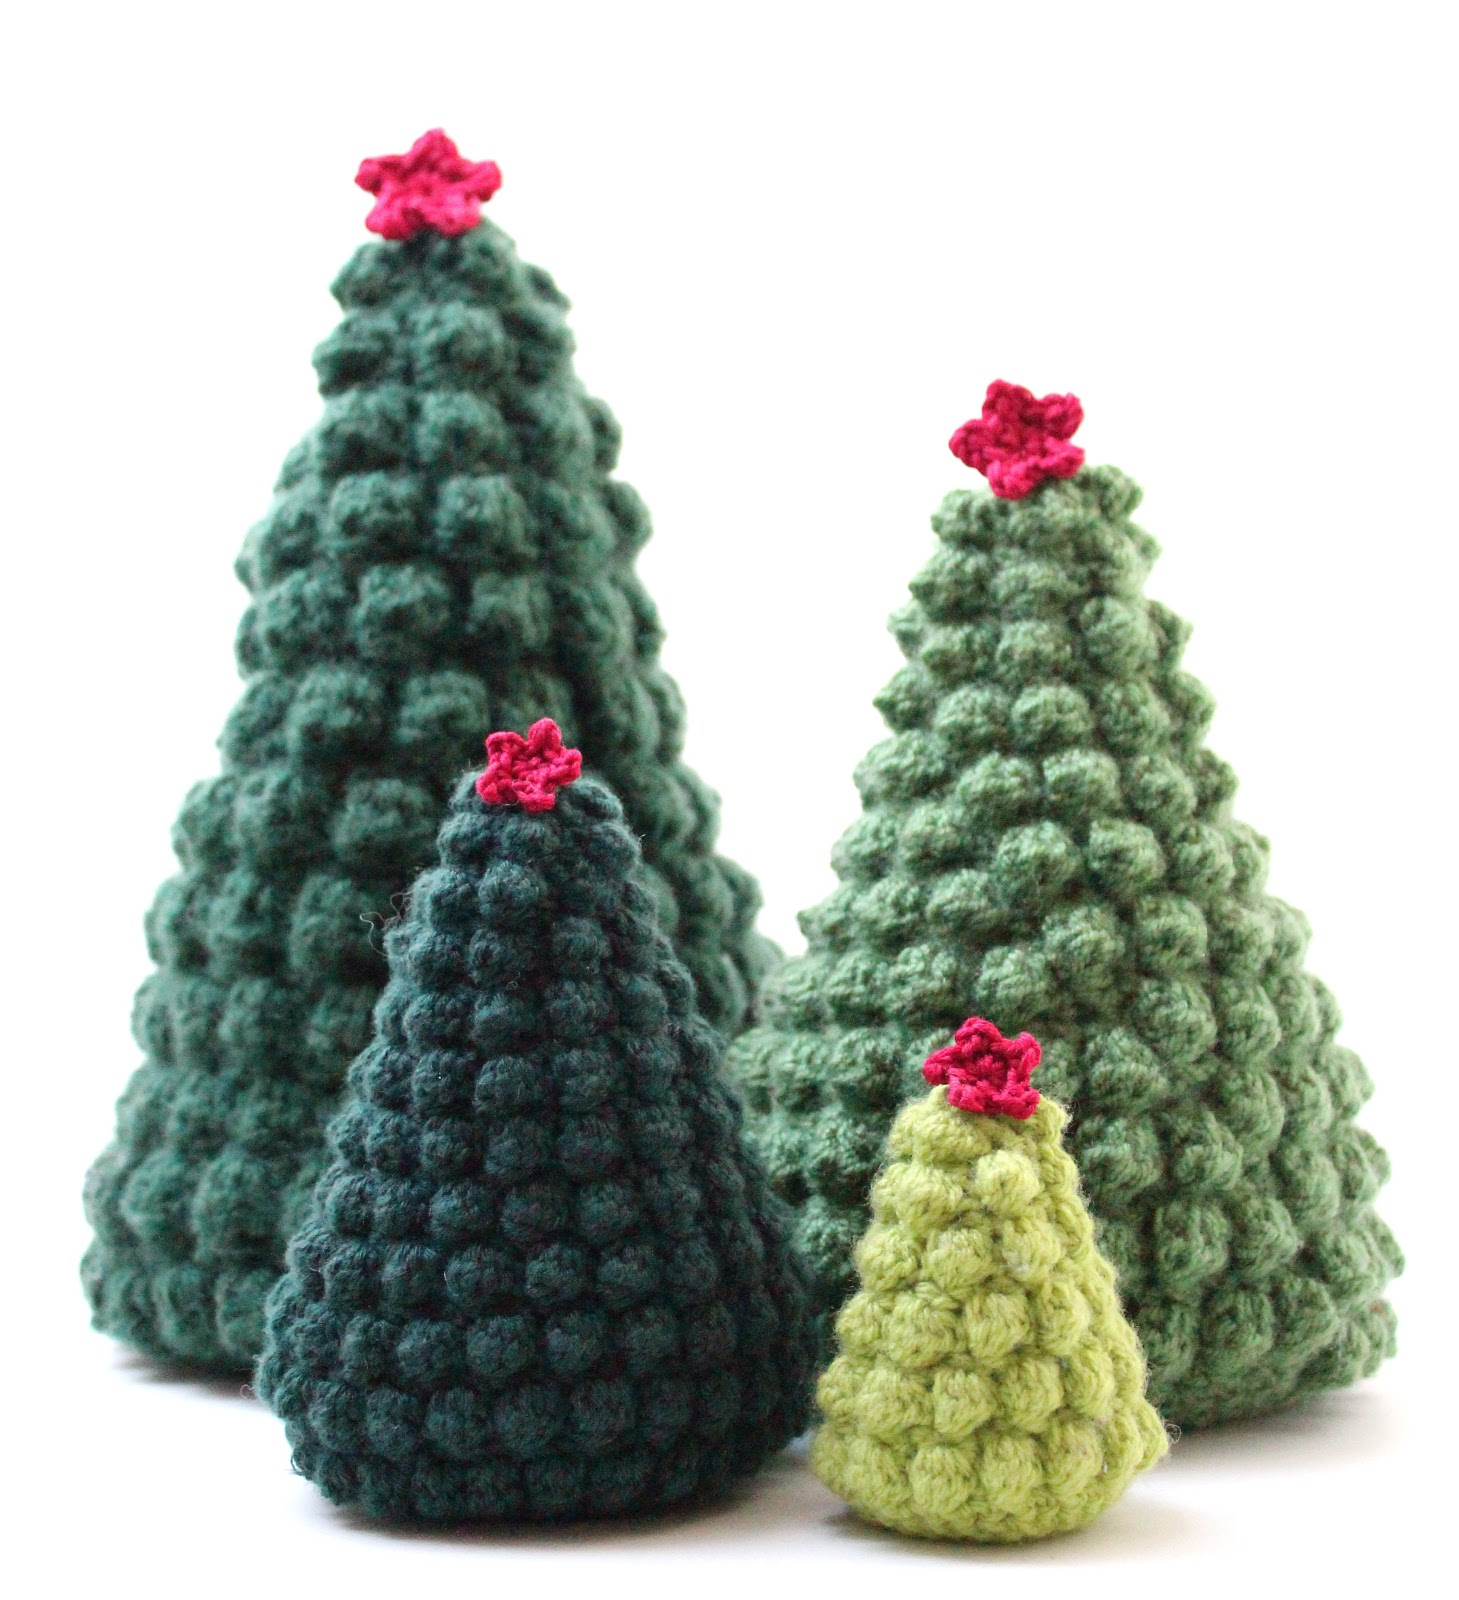 Crochet Patterns Xmas : According to Matt...: Creative Christmas: Crocheted Christmas Trees